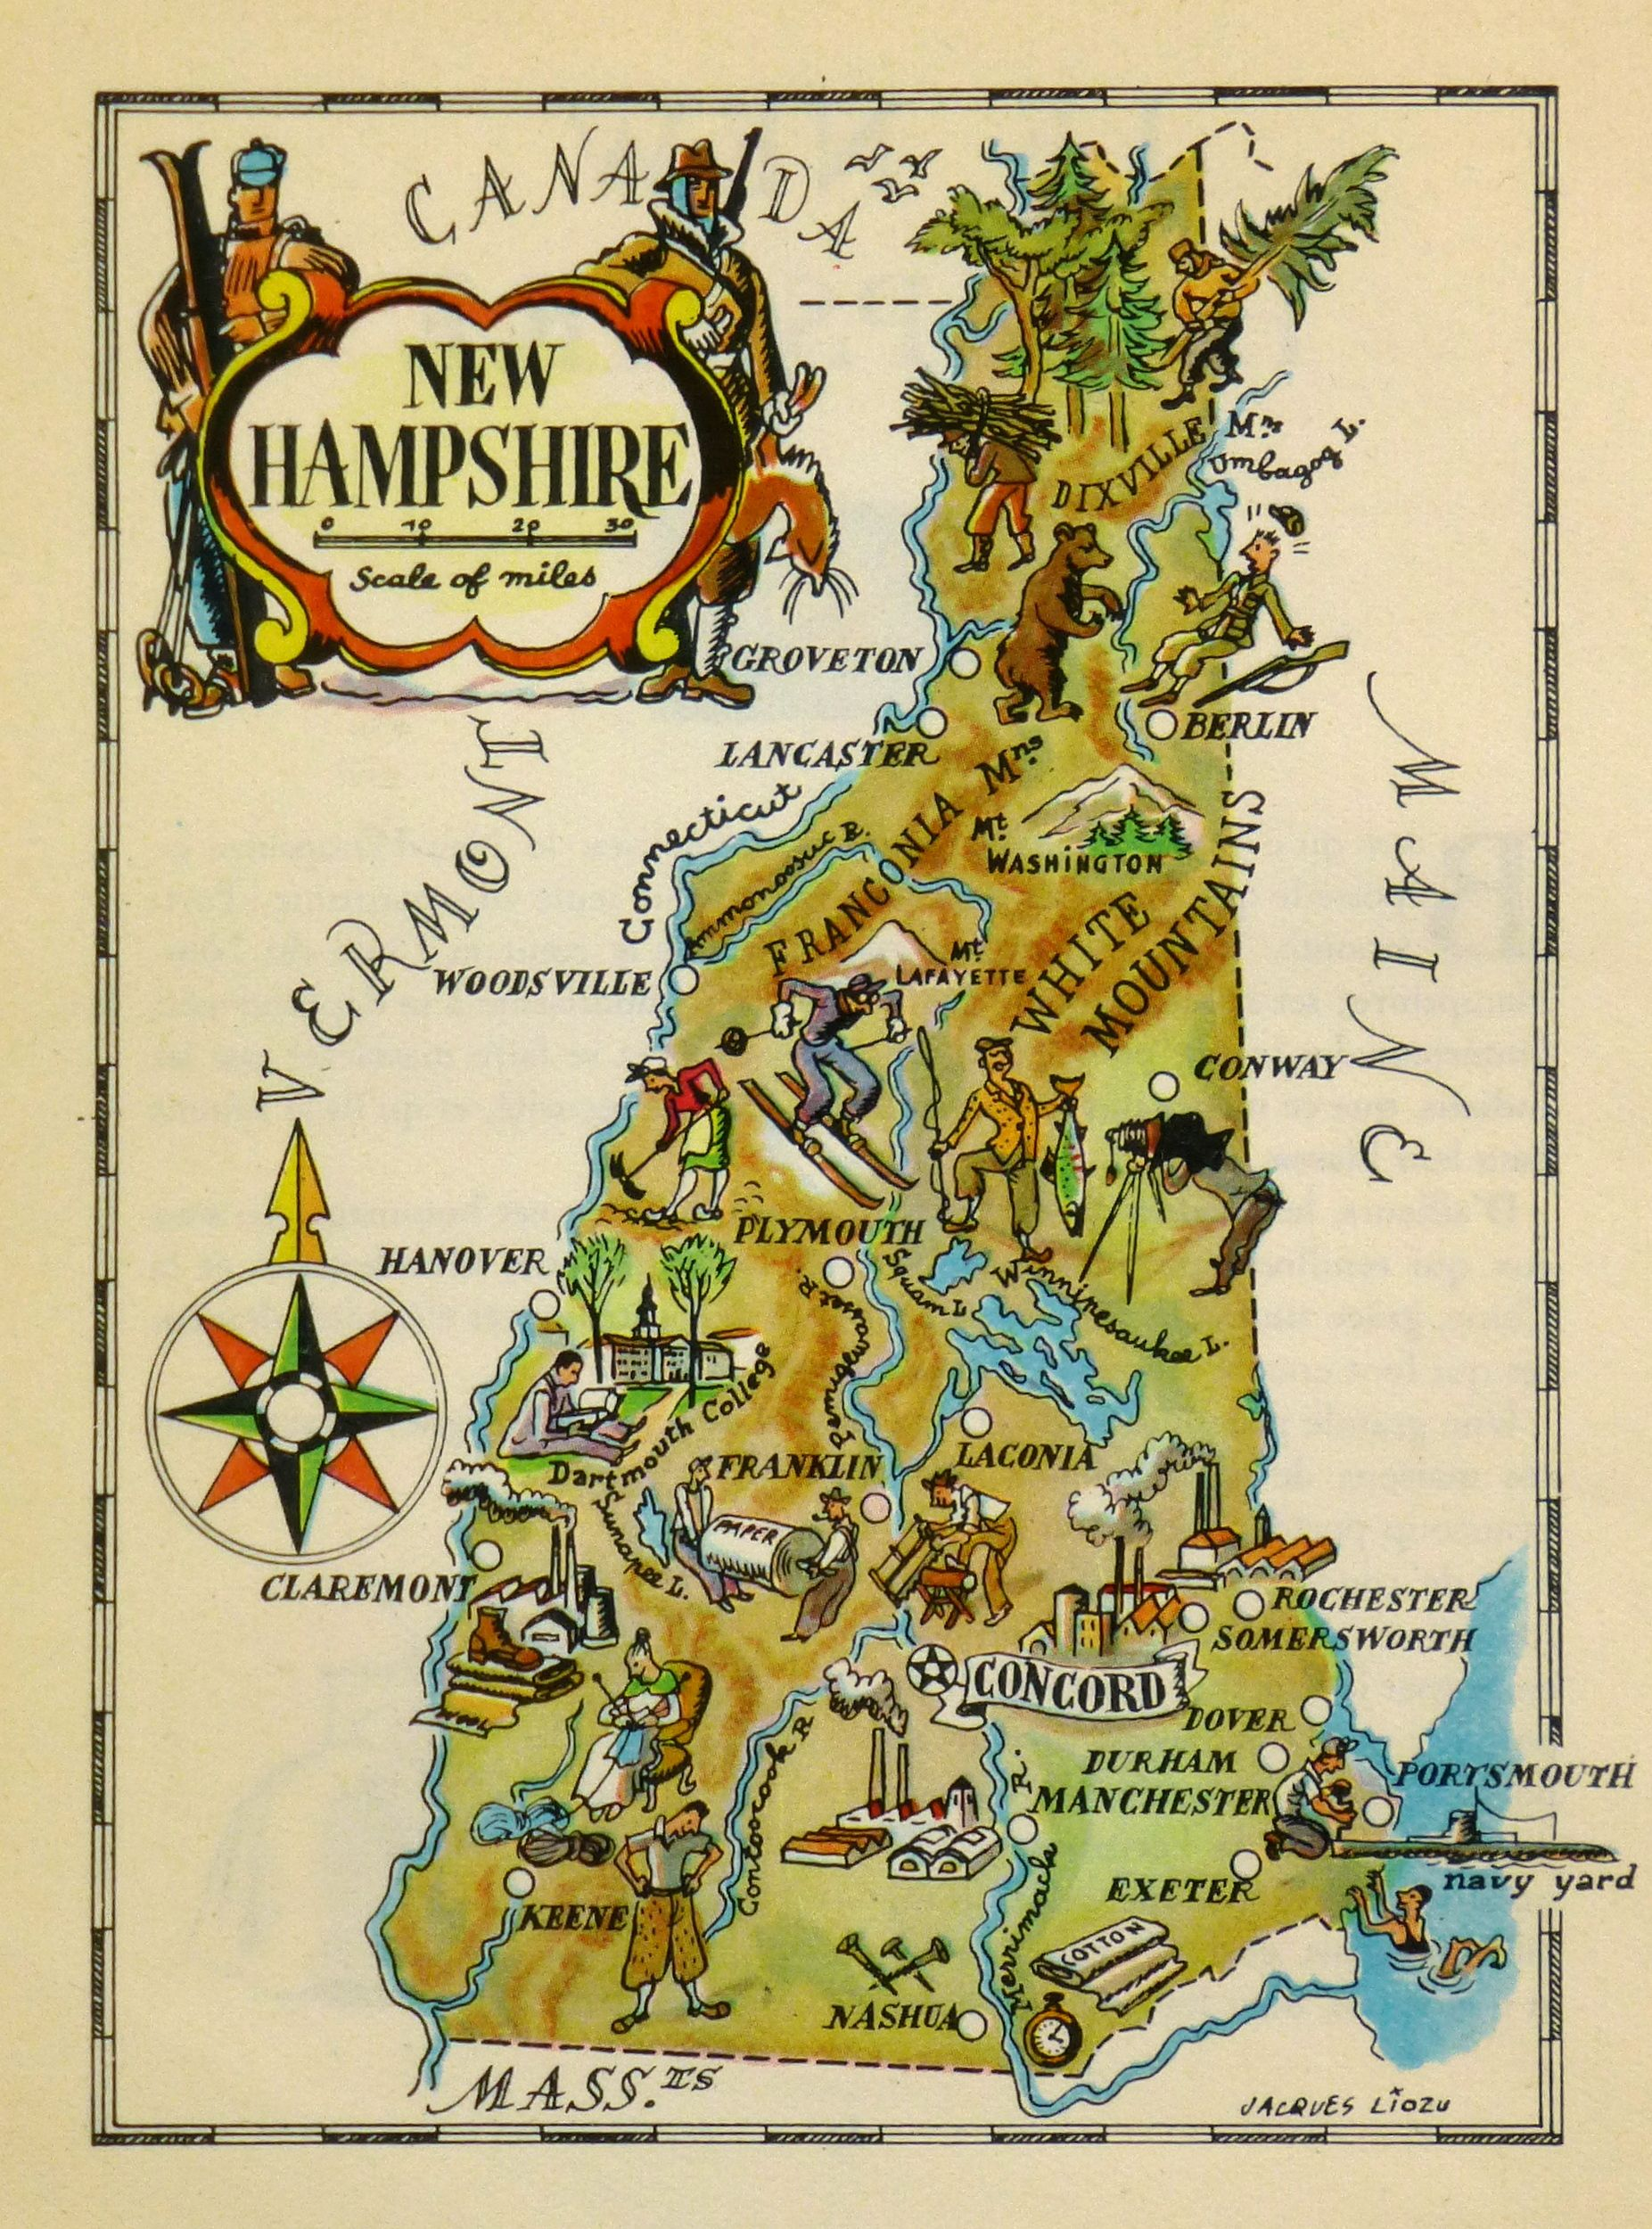 Vintage Pictorial Map Of New Hampshire By Jacques Lizou In